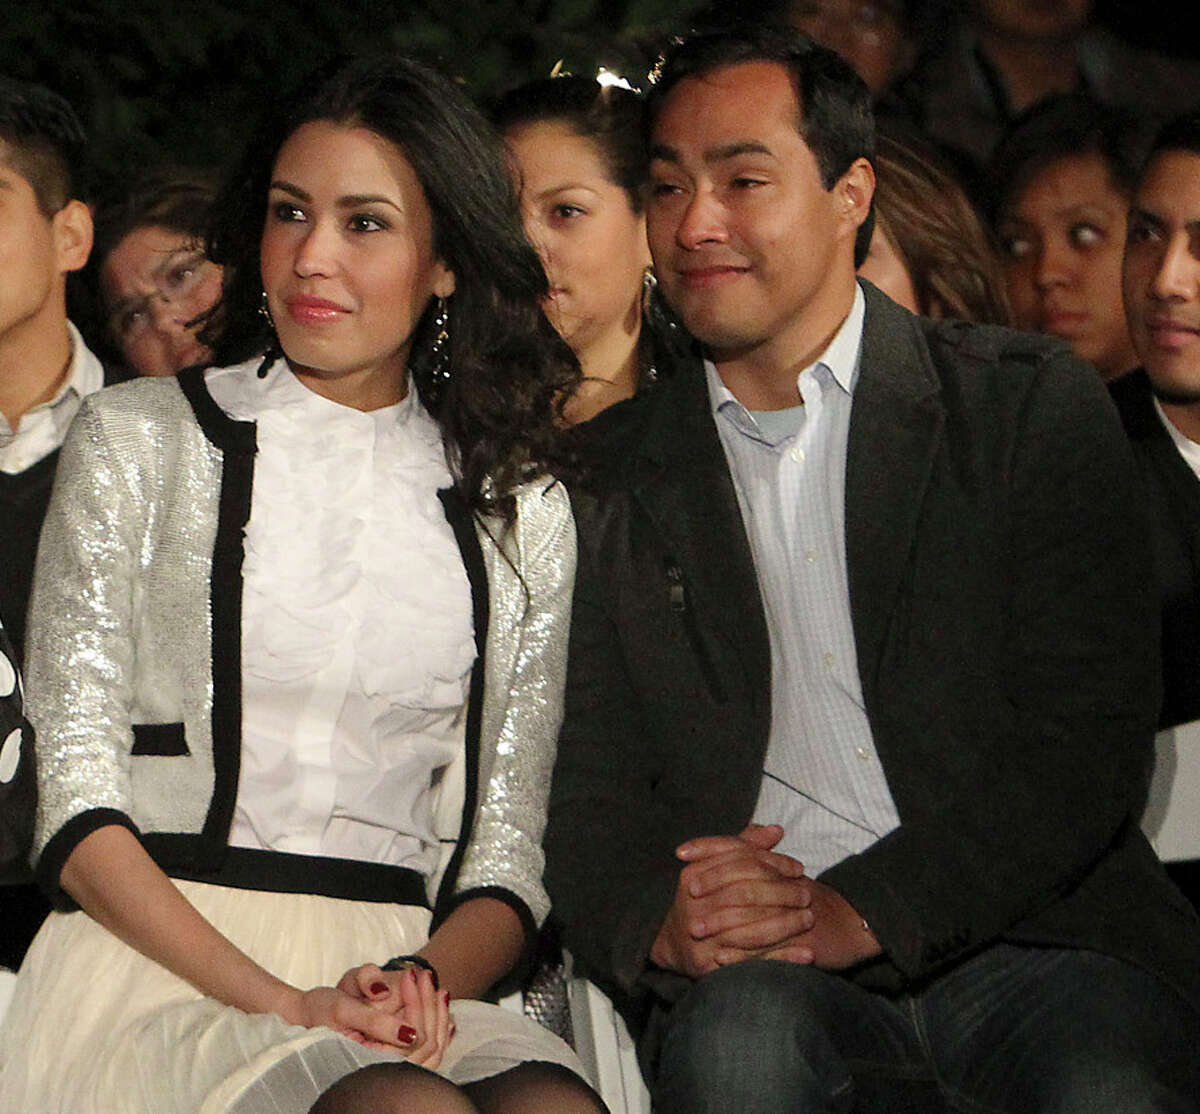 Anna Flores and U.S. Rep. Joaquín Castro attend the H-E-B Tree Lighting Celebration in November 2012. Mayor Julián Castro, Joaquín's twin, announced his brother's engagement to Flores on Facebook Monday, June 17, 2013.